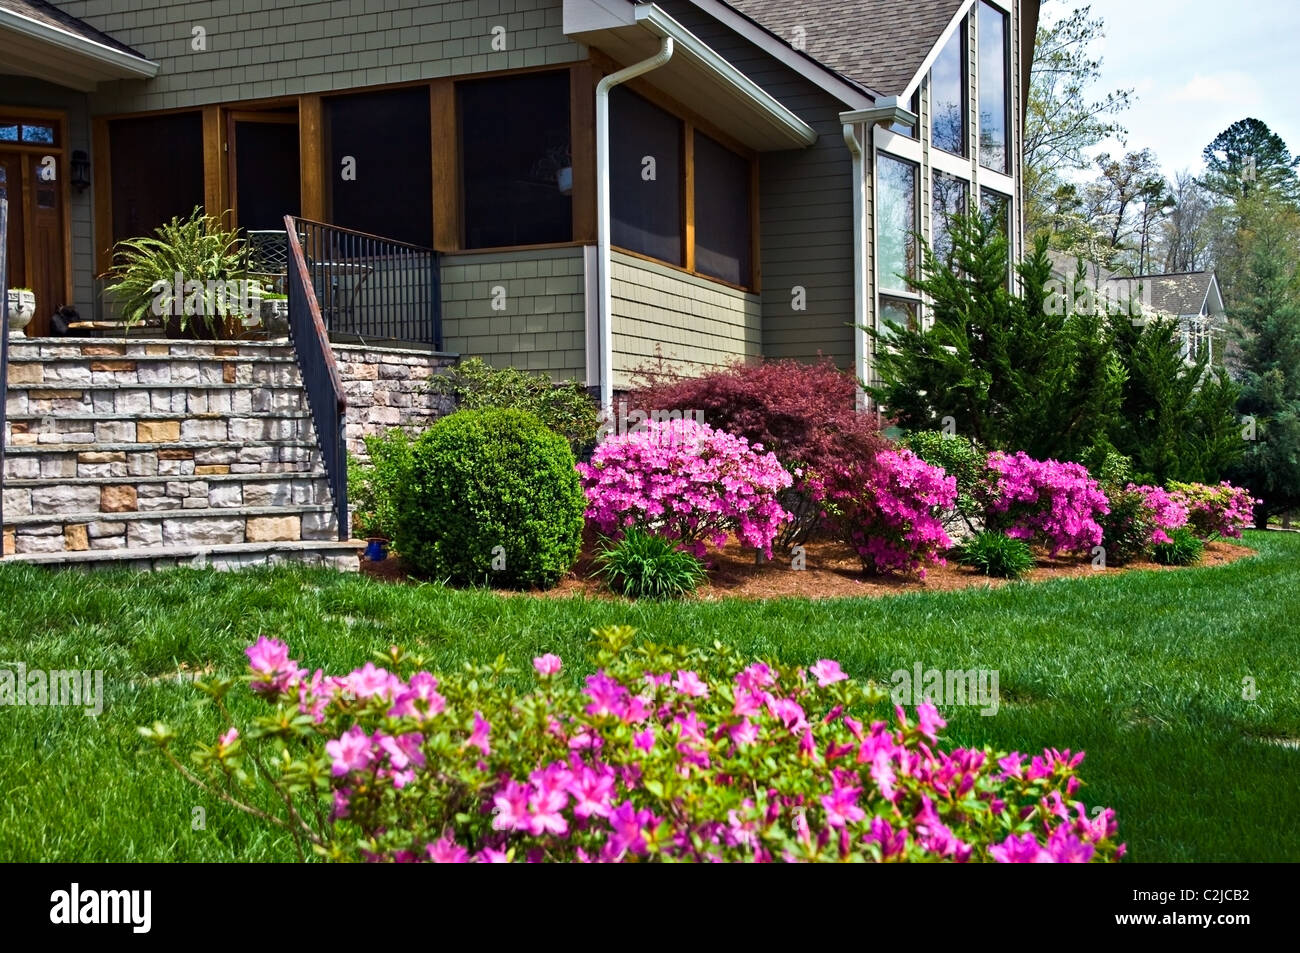 Front Porch Area Of A House Showing The Blooming Azaleas In The